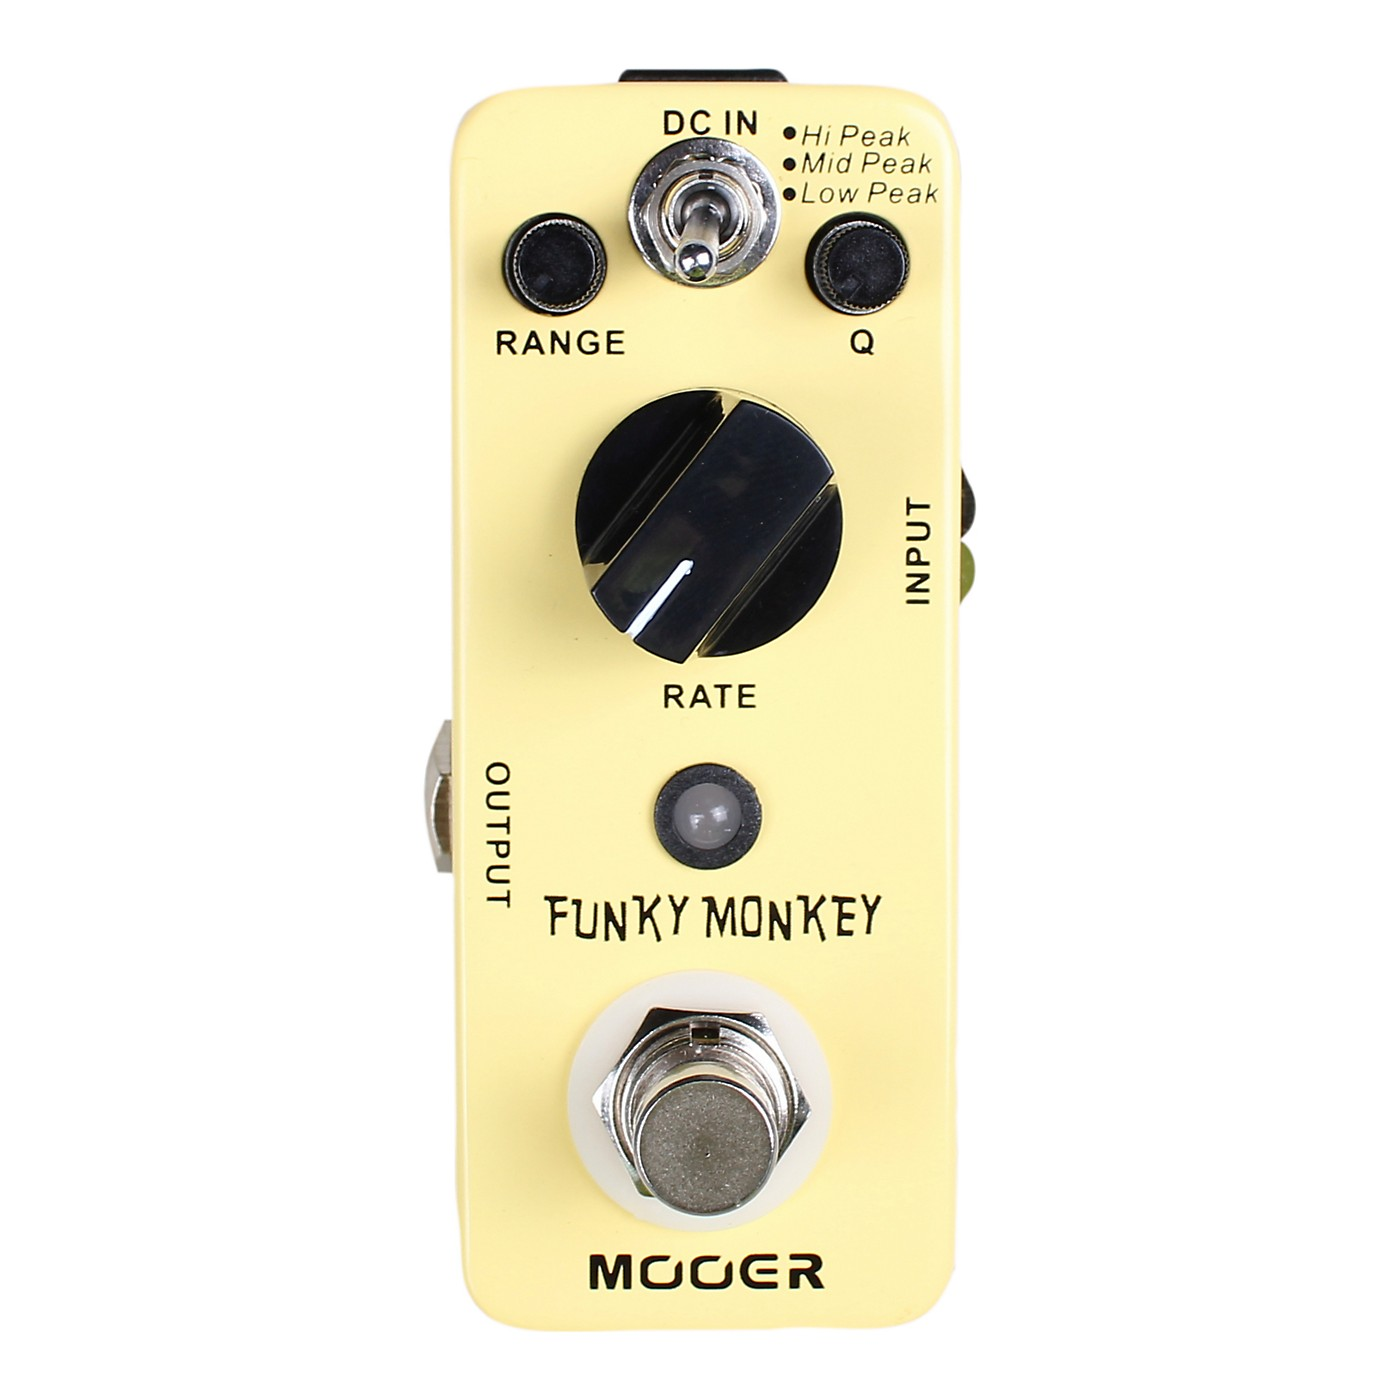 Mooer Funky Monkey Digital Auto Wah Guitar Effects Pedal thumbnail